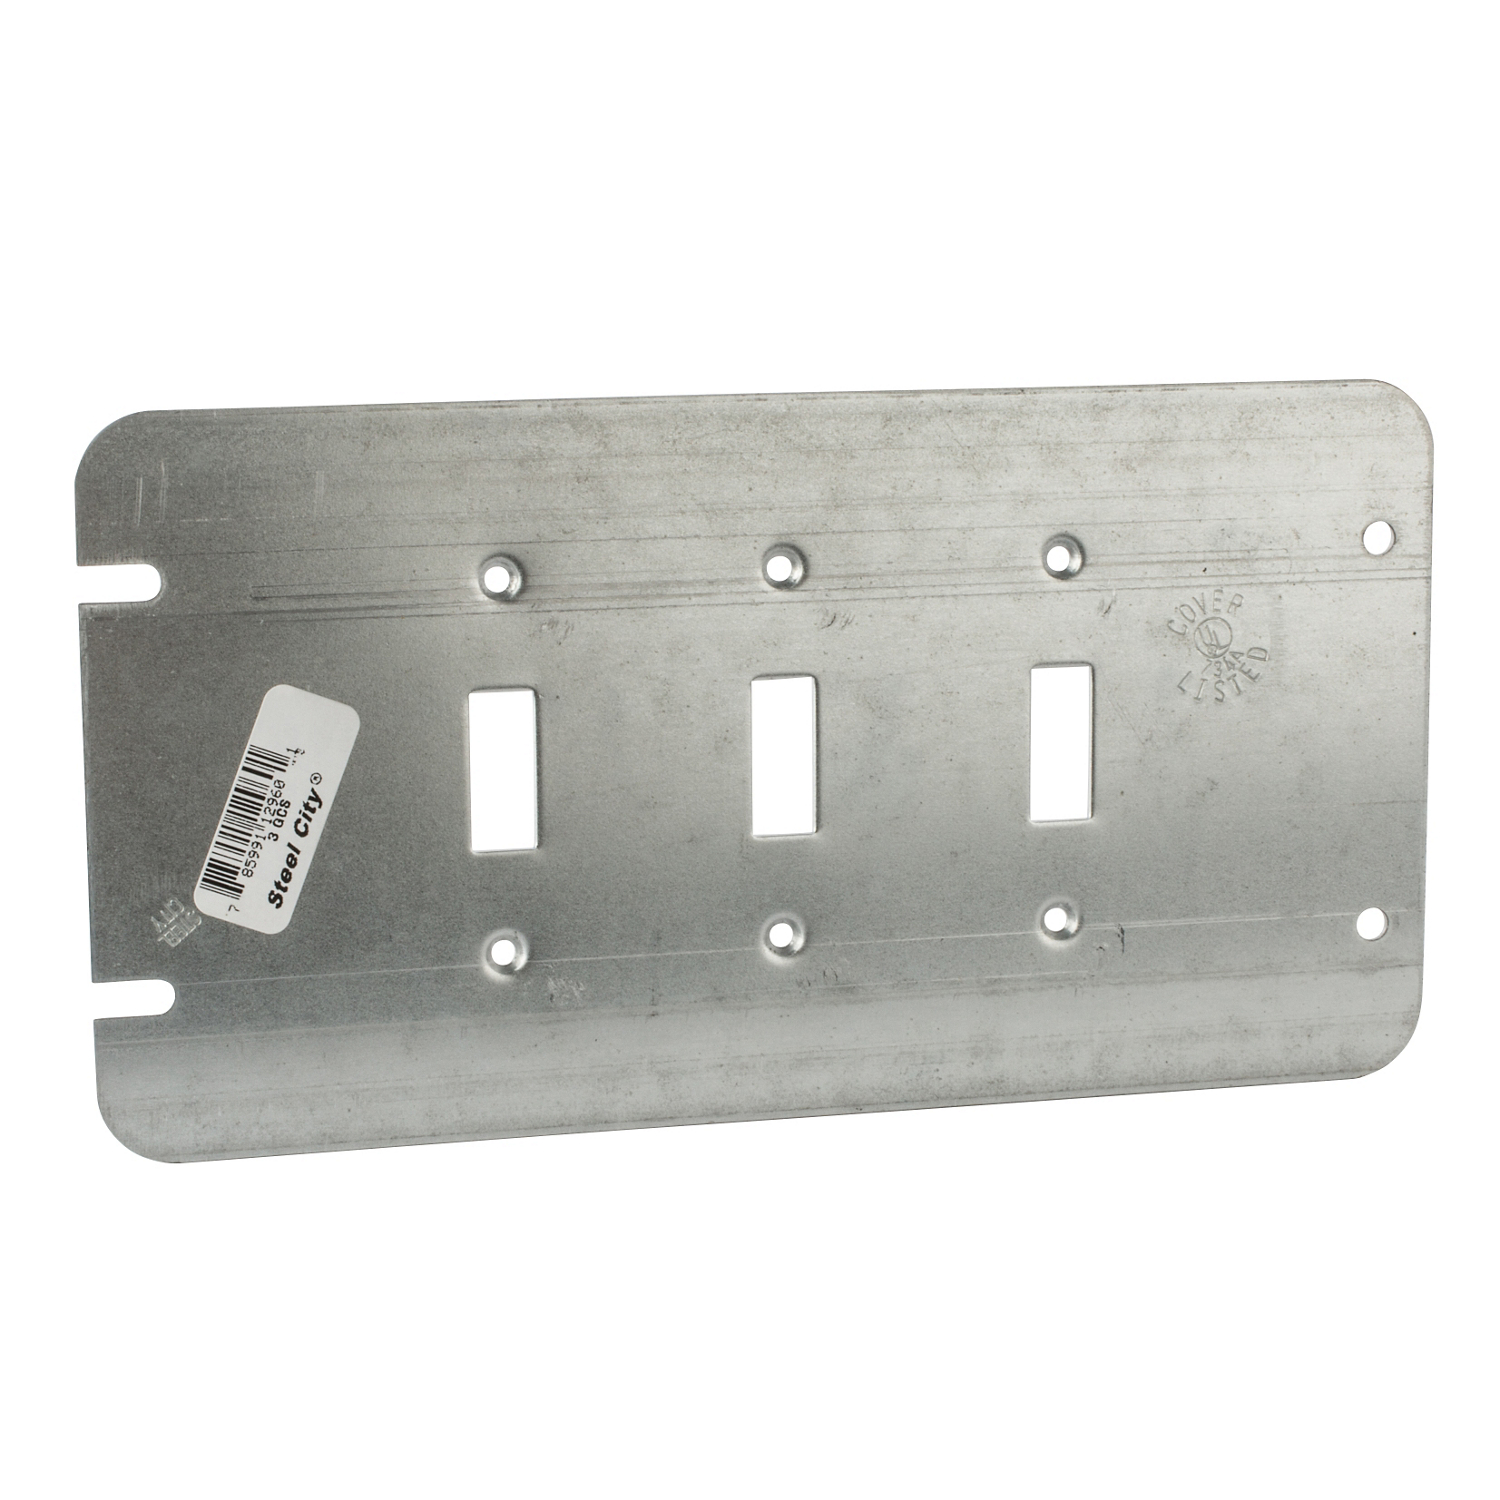 Steel City,3-GCS,Steel City® 3-GCS Outlet Box Cover, 8-13/16 in L x 4-11/16 in W, Steel